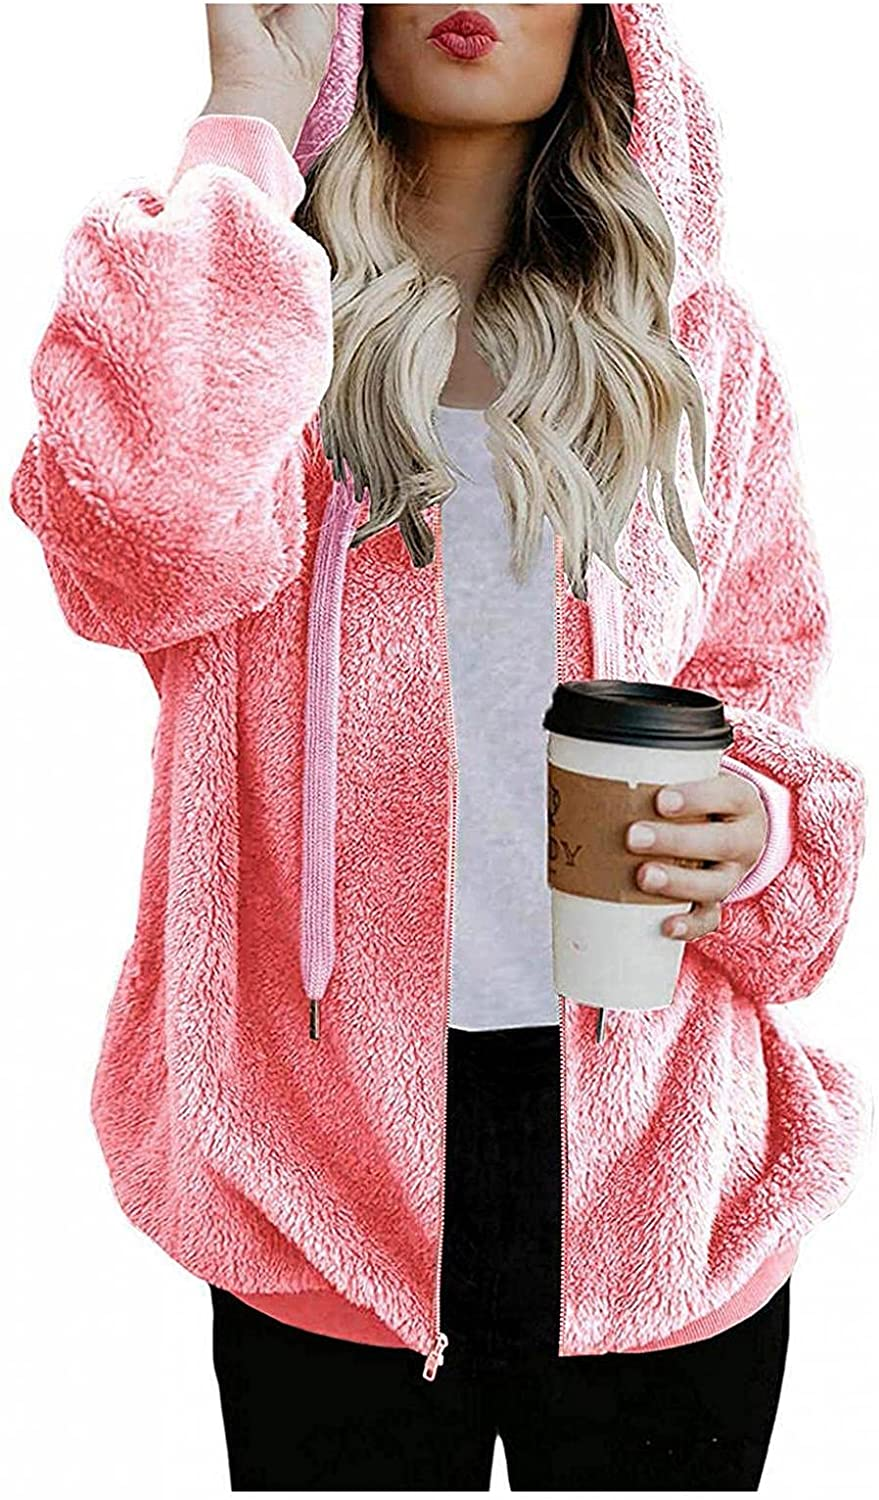 Lovely Nursling Womens Hoodies Max 83% OFF Beauty products Pullover Zip Women's L Oversized